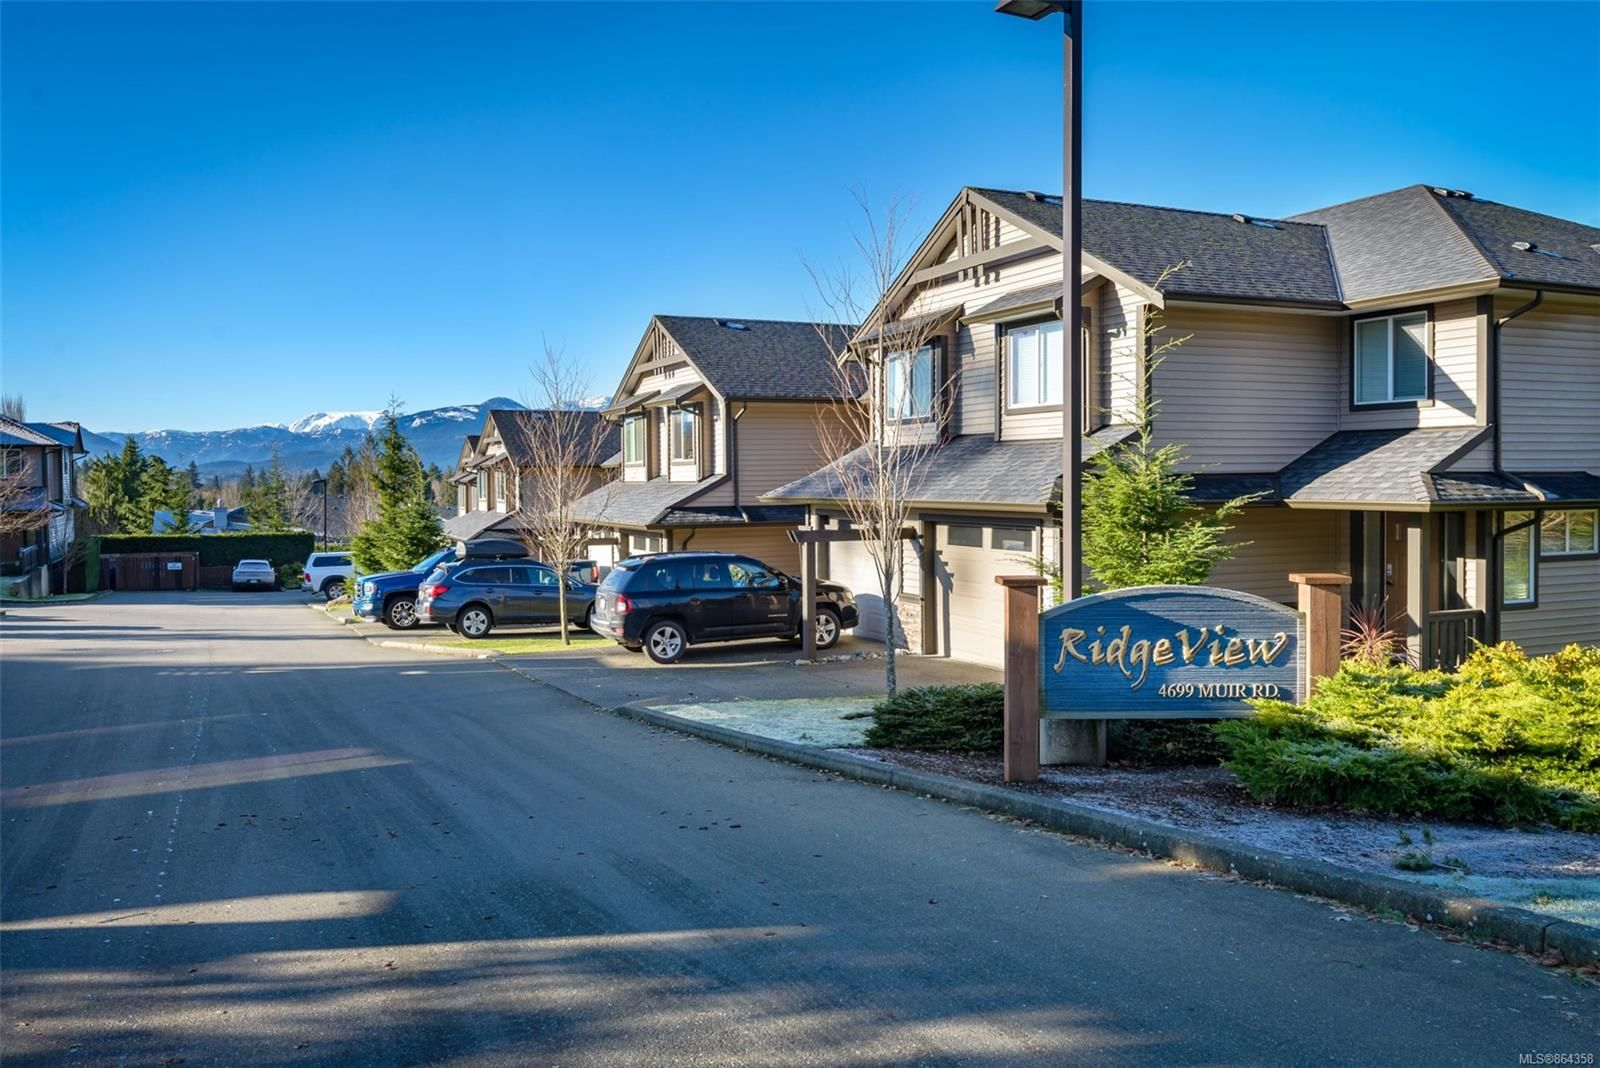 Main Photo: 230 4699 Muir Rd in : CV Courtenay East Row/Townhouse for sale (Comox Valley)  : MLS®# 864358